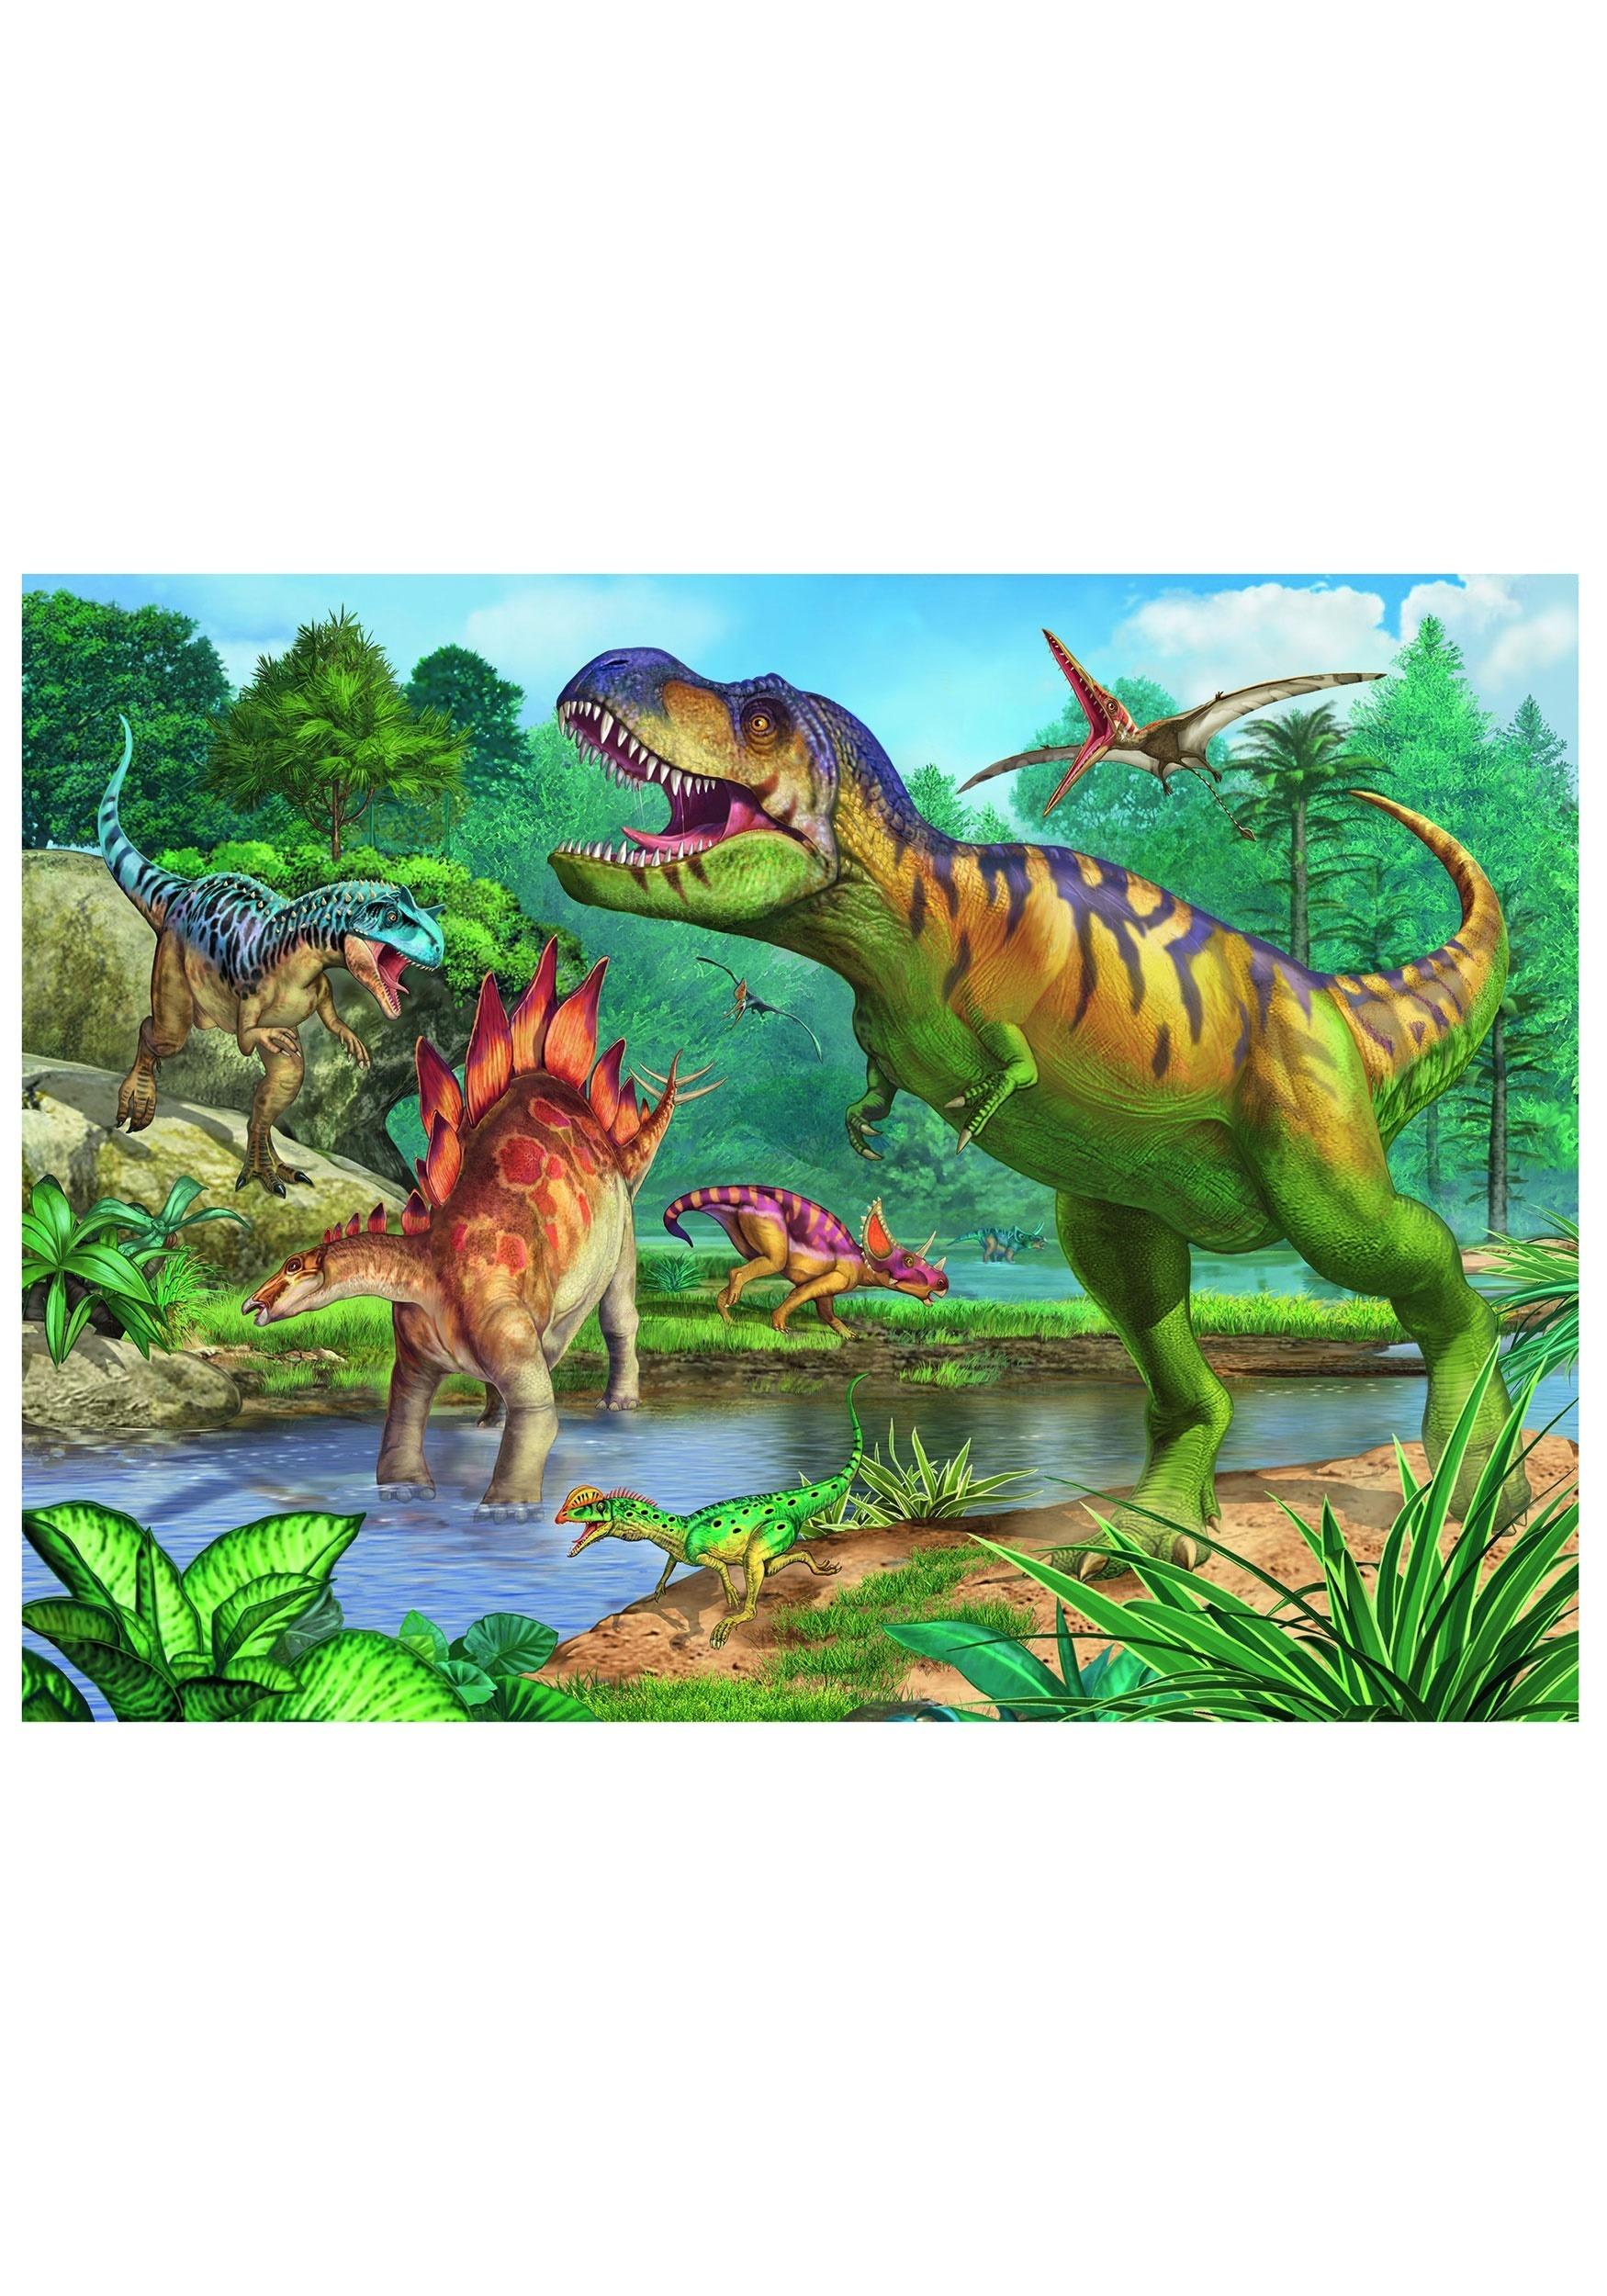 Metric To Standard >> World of Dinosaurs 100 Piece Ravensburger Puzzle and